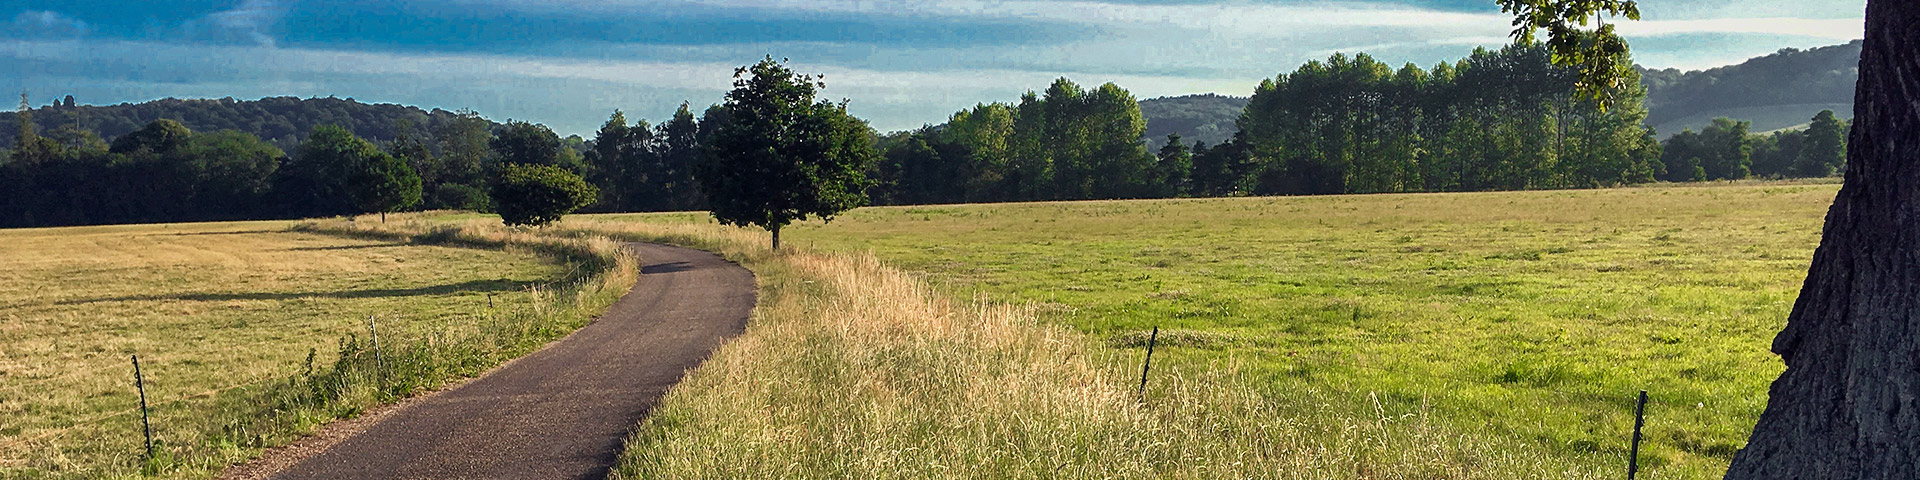 Panorama of the Hambledon Lock hike in Chiltern Hills, England